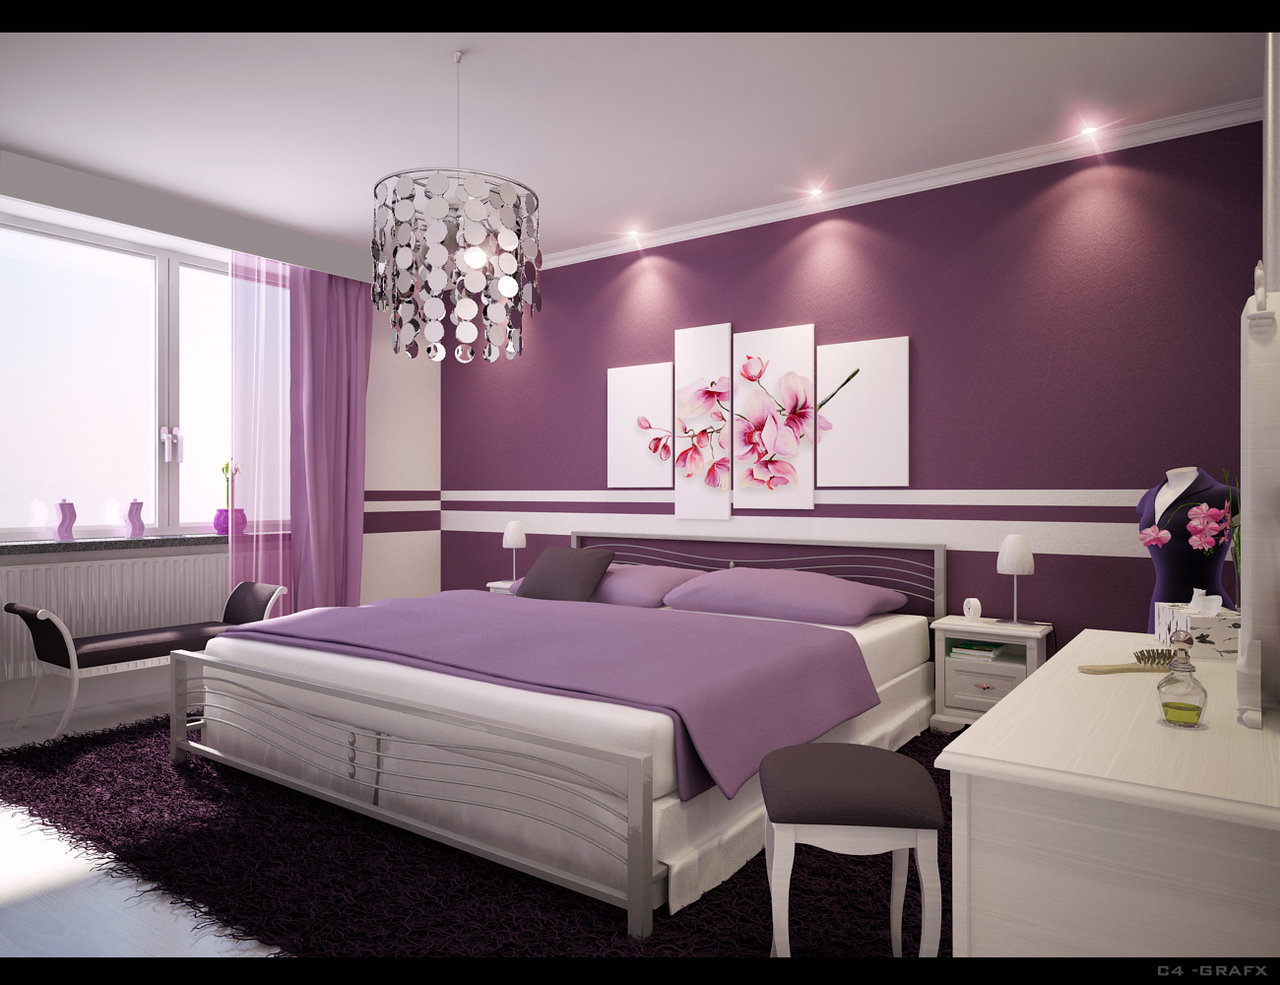 House To Home Designs Bedding Wallpaper